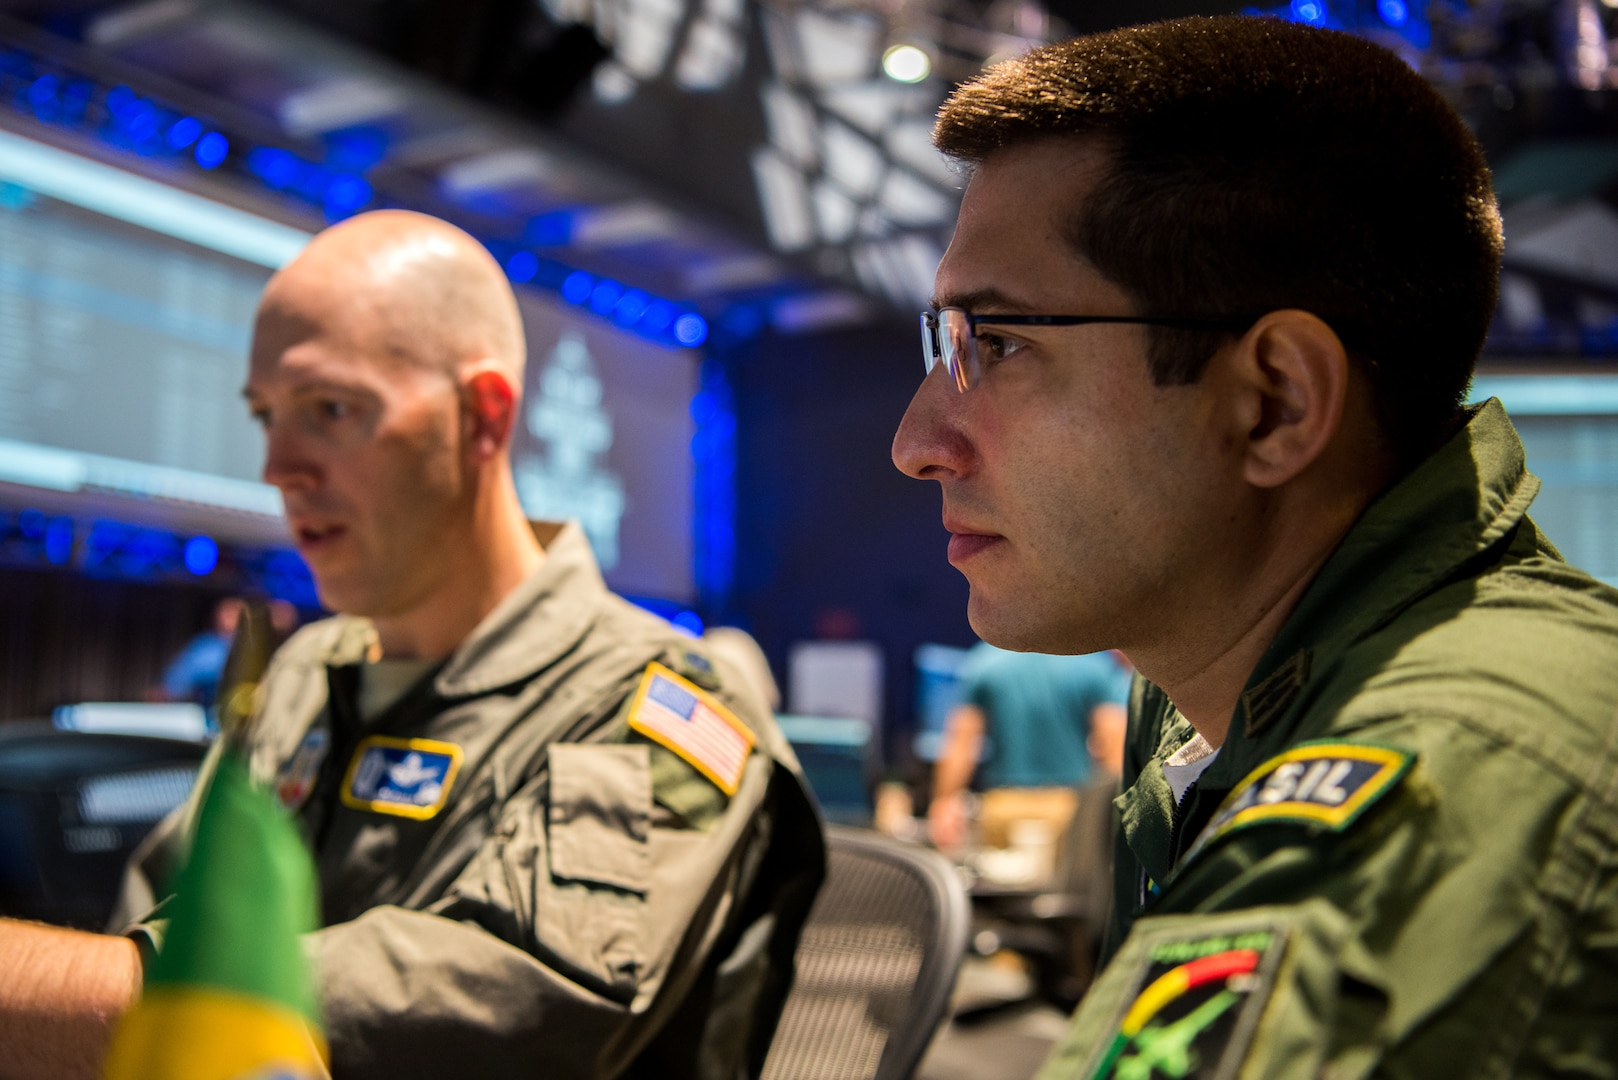 (From Left) U.S. Air Force Lt. Col. Galen Ojala, U.S. Southern Command Director of Space Forces, works with Brazilian Air Force Maj. Rafael de Almeida Duque, Brazilian Aerospace Command, at Lockheed Martin's Center for Innovation in Suffolk, Va., Sept. 27, 2019, during Global Sentinel 19. The event provided an opportunity to develop and implement processes for partners from Australia, Canada, France, Germany, Italy, Japan, the Republic of Korea, Spain, the United Kingdom, the United States to collaborate on space surveillance and spaceflight safety to broaden mutual understanding and enhance cooperation.  (U.S. Air Force photo by Staff Sgt. J.T. Armstrong)